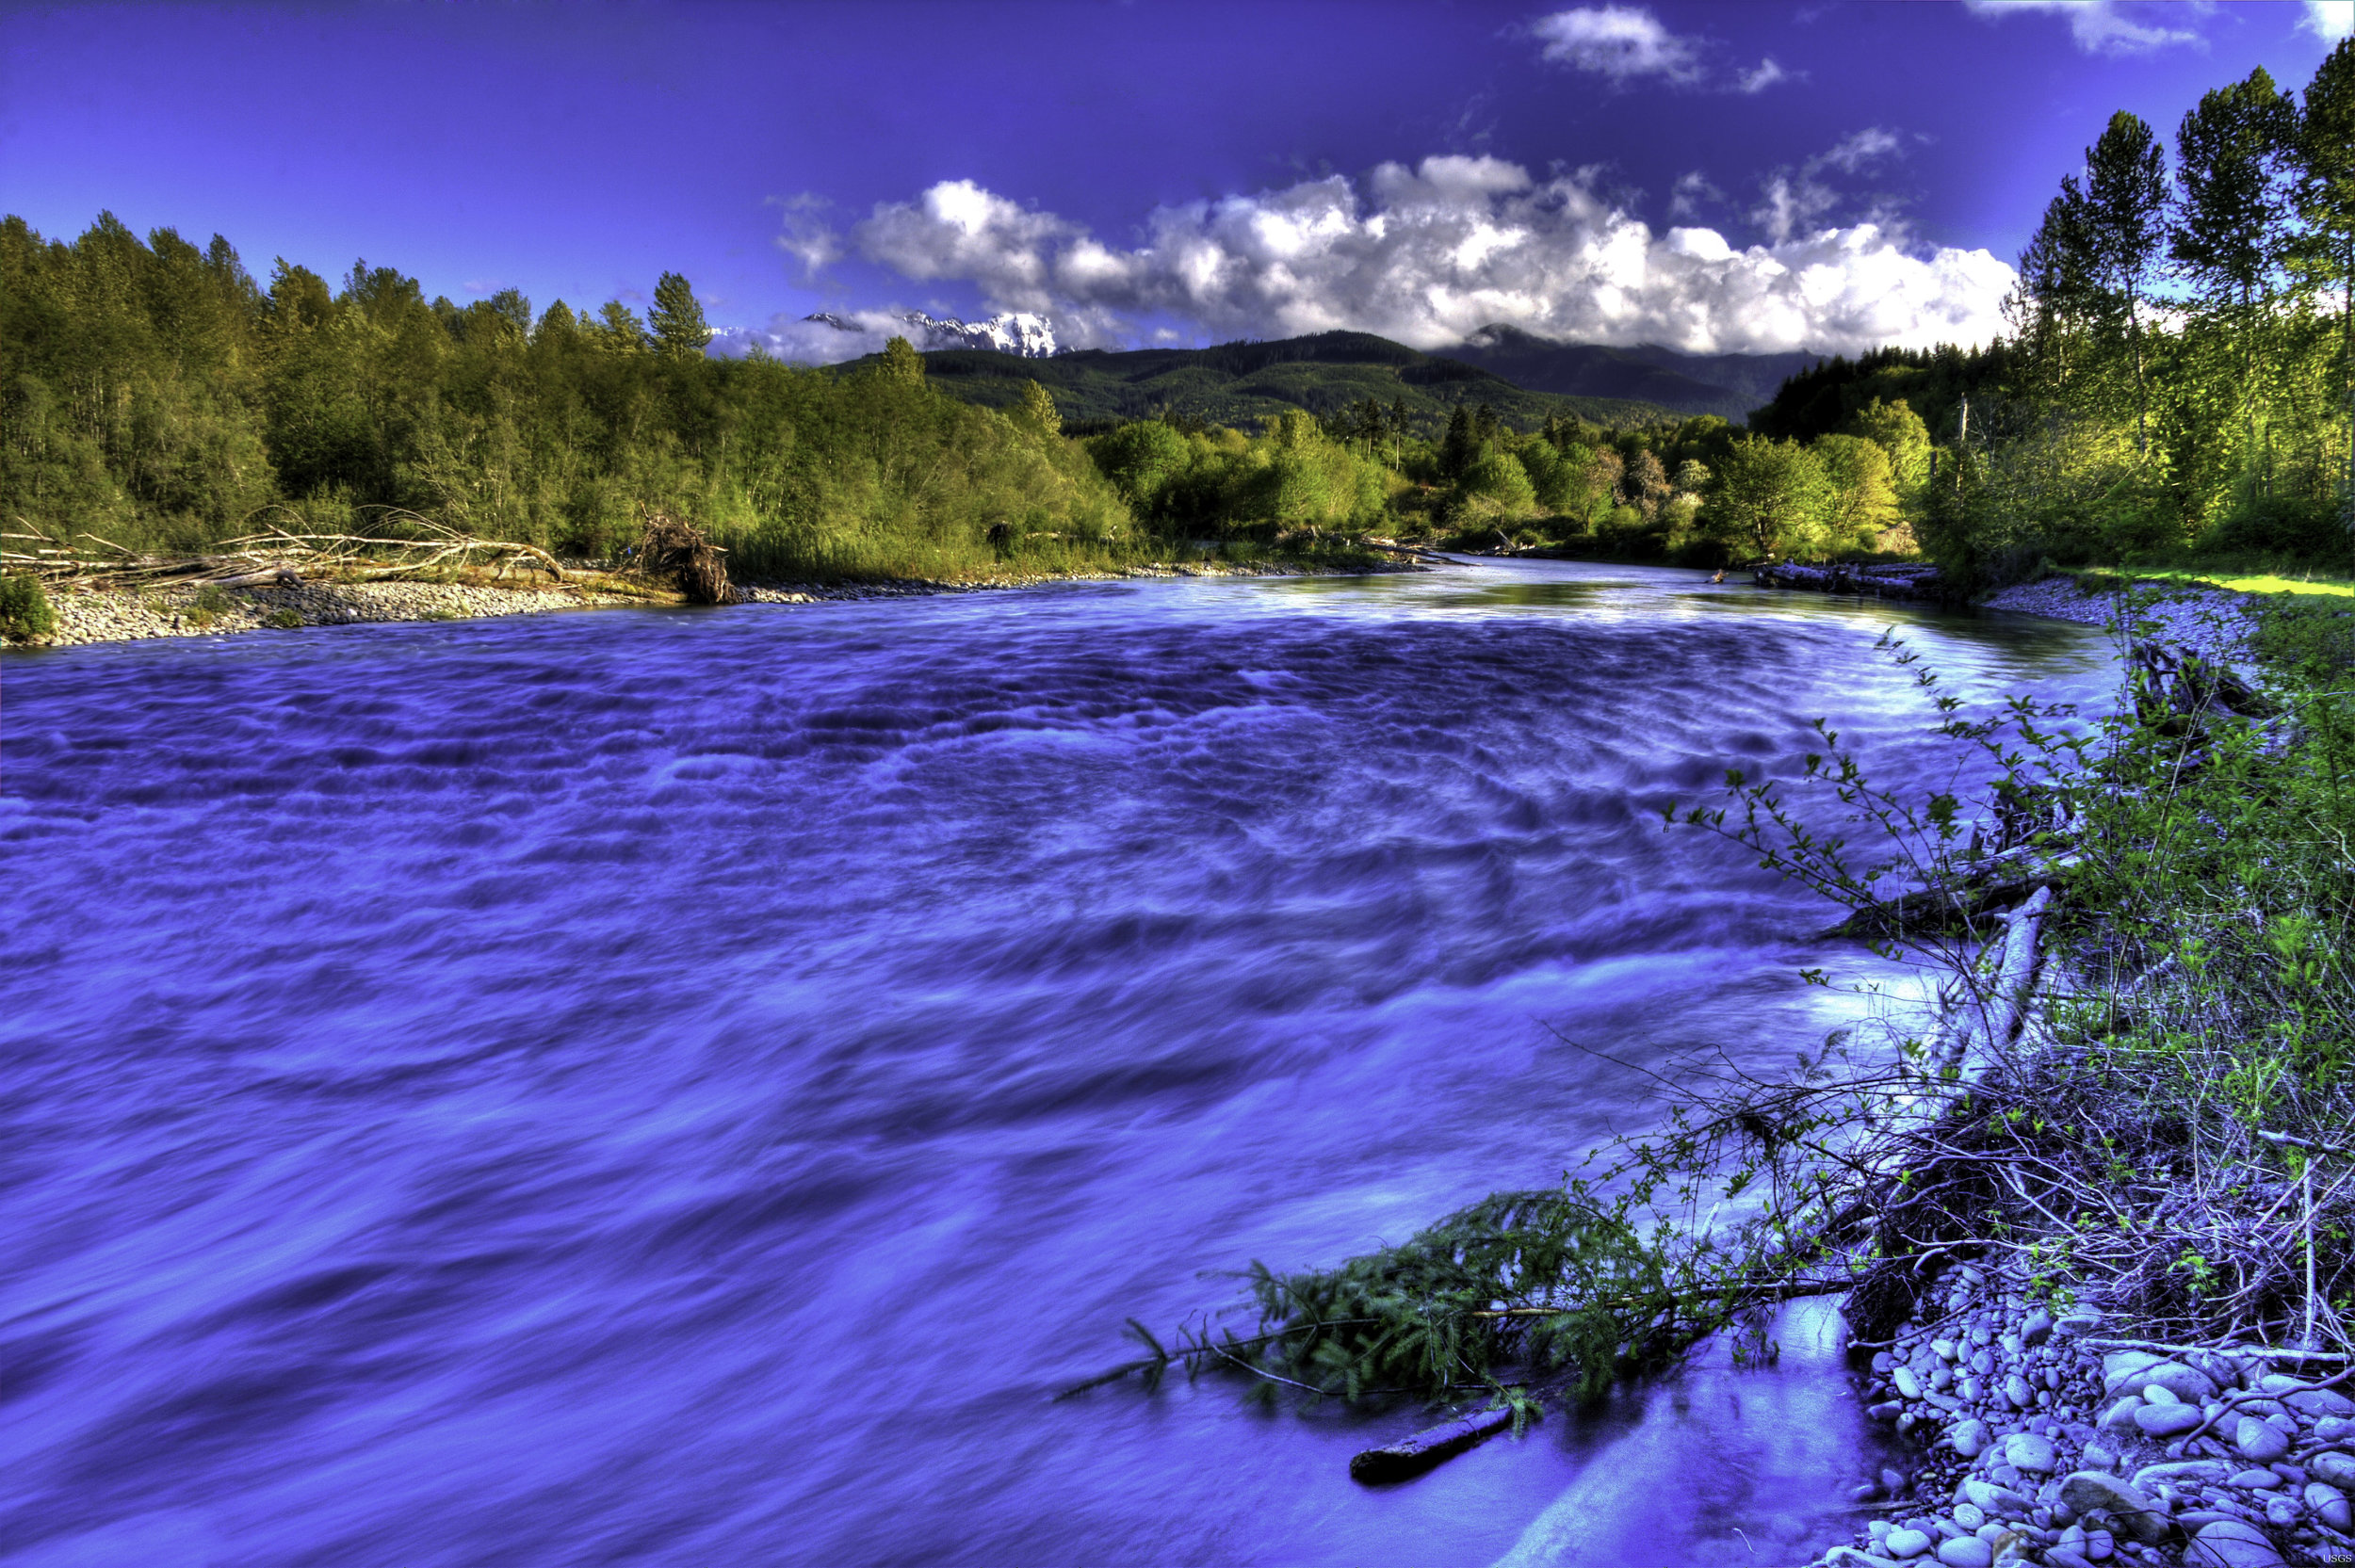 elwha-river-landscape-in-olympic-national-park-washington-hdr.jpg